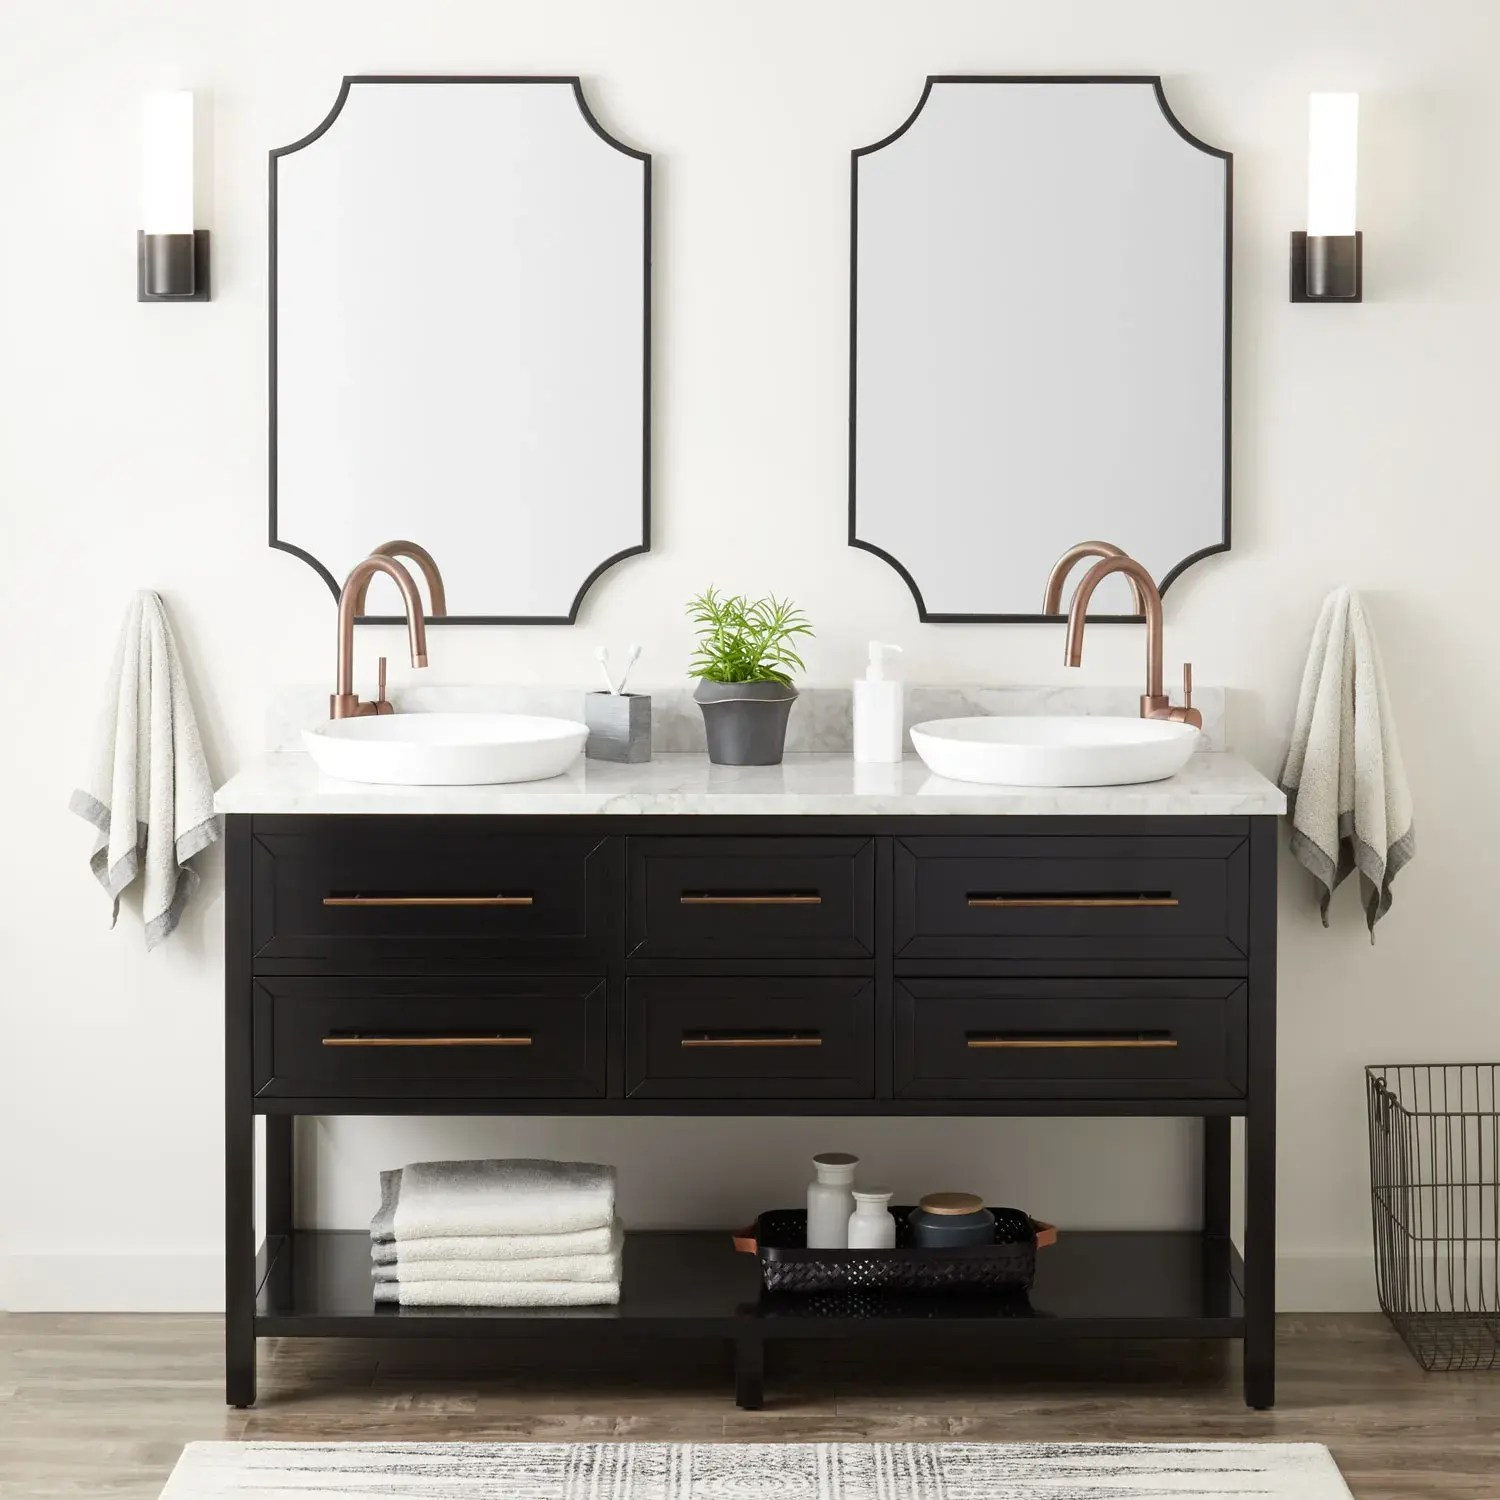 60 robertson double console vanity for semi recessed sinks black